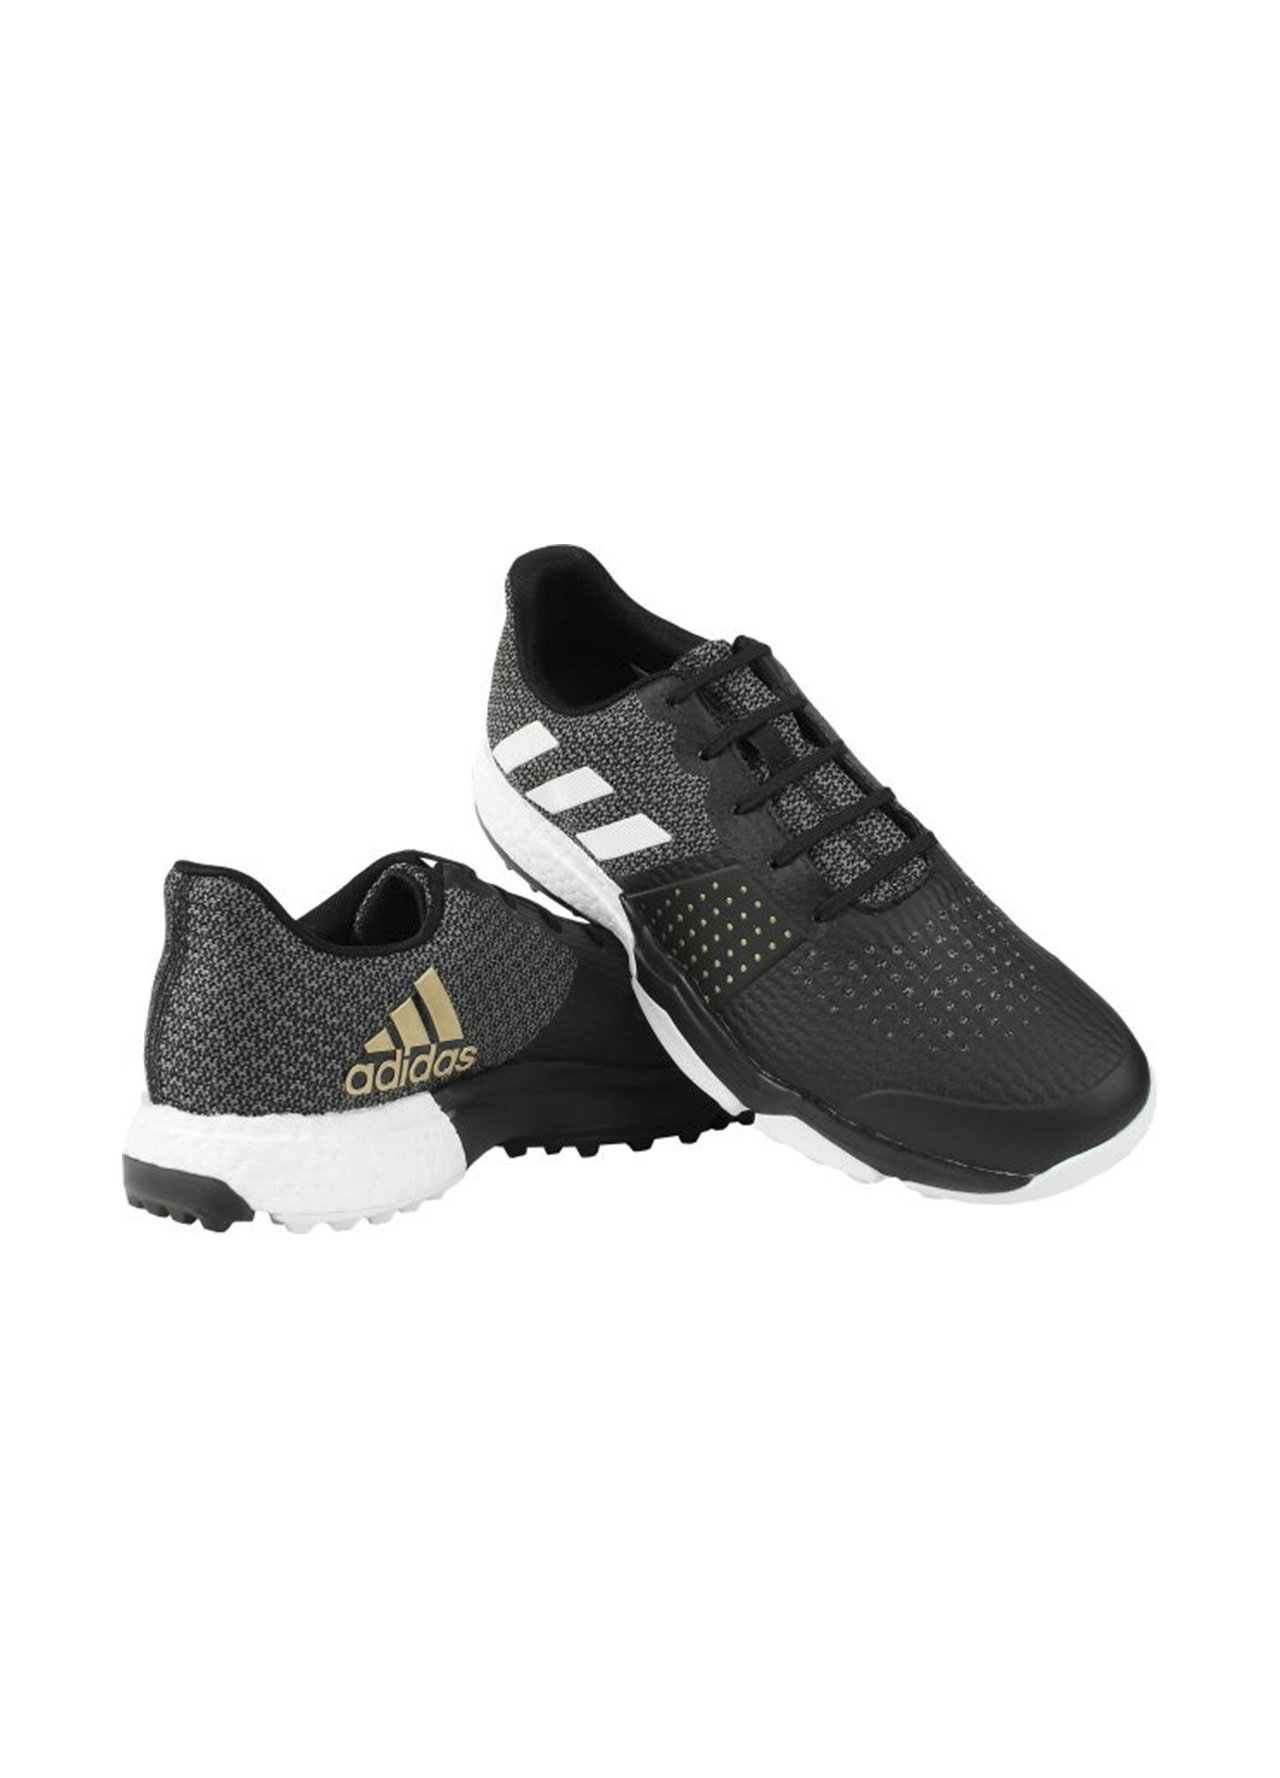 Adidas-adiPower-Sport-Boost-3-Waterproof-Golf-Shoes